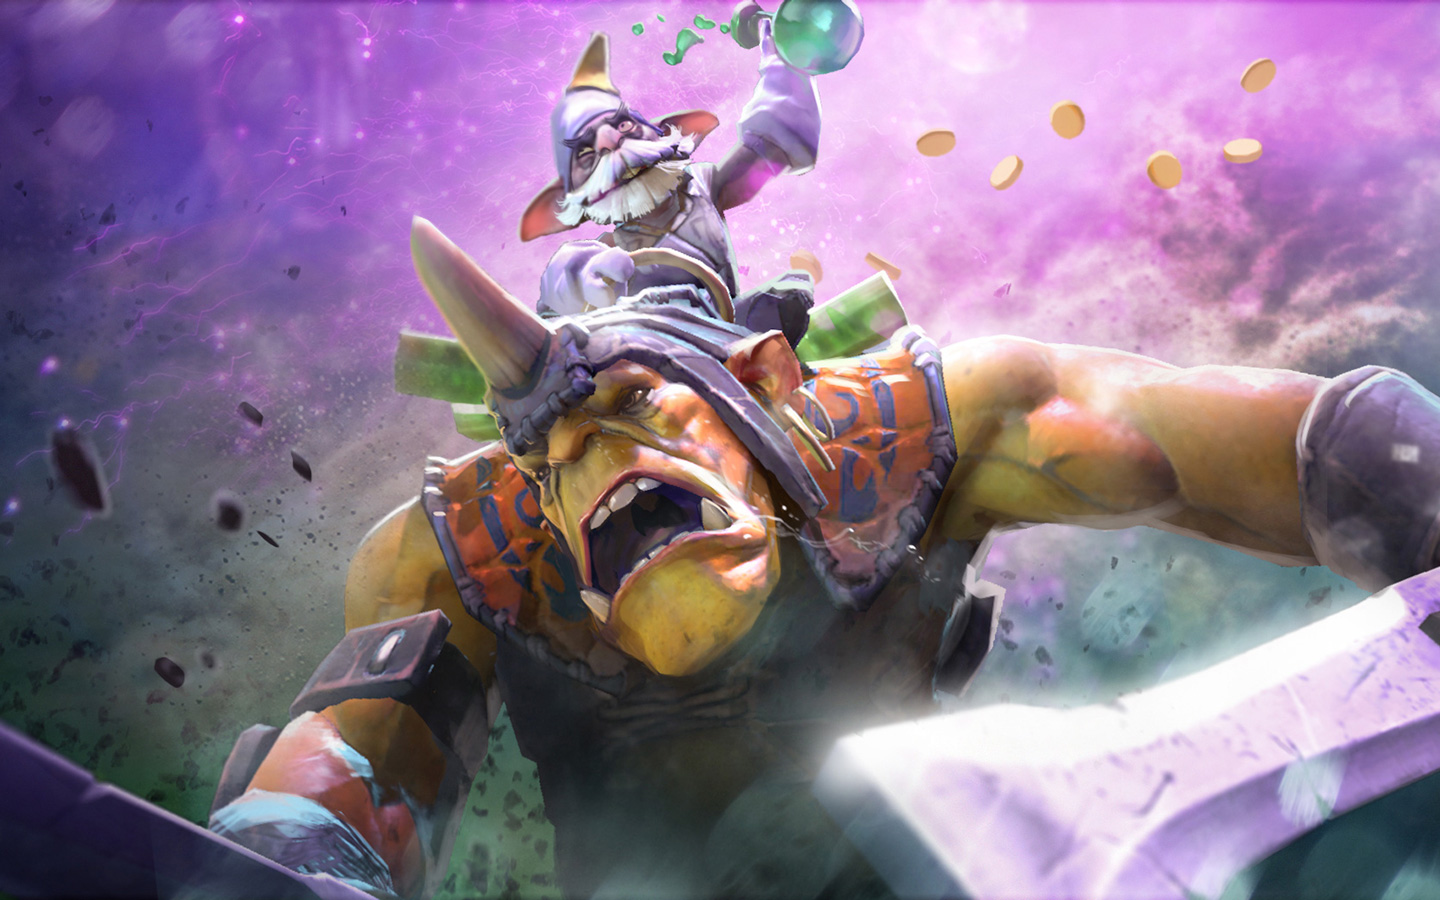 Free Dota 2 Wallpaper in 1440x900